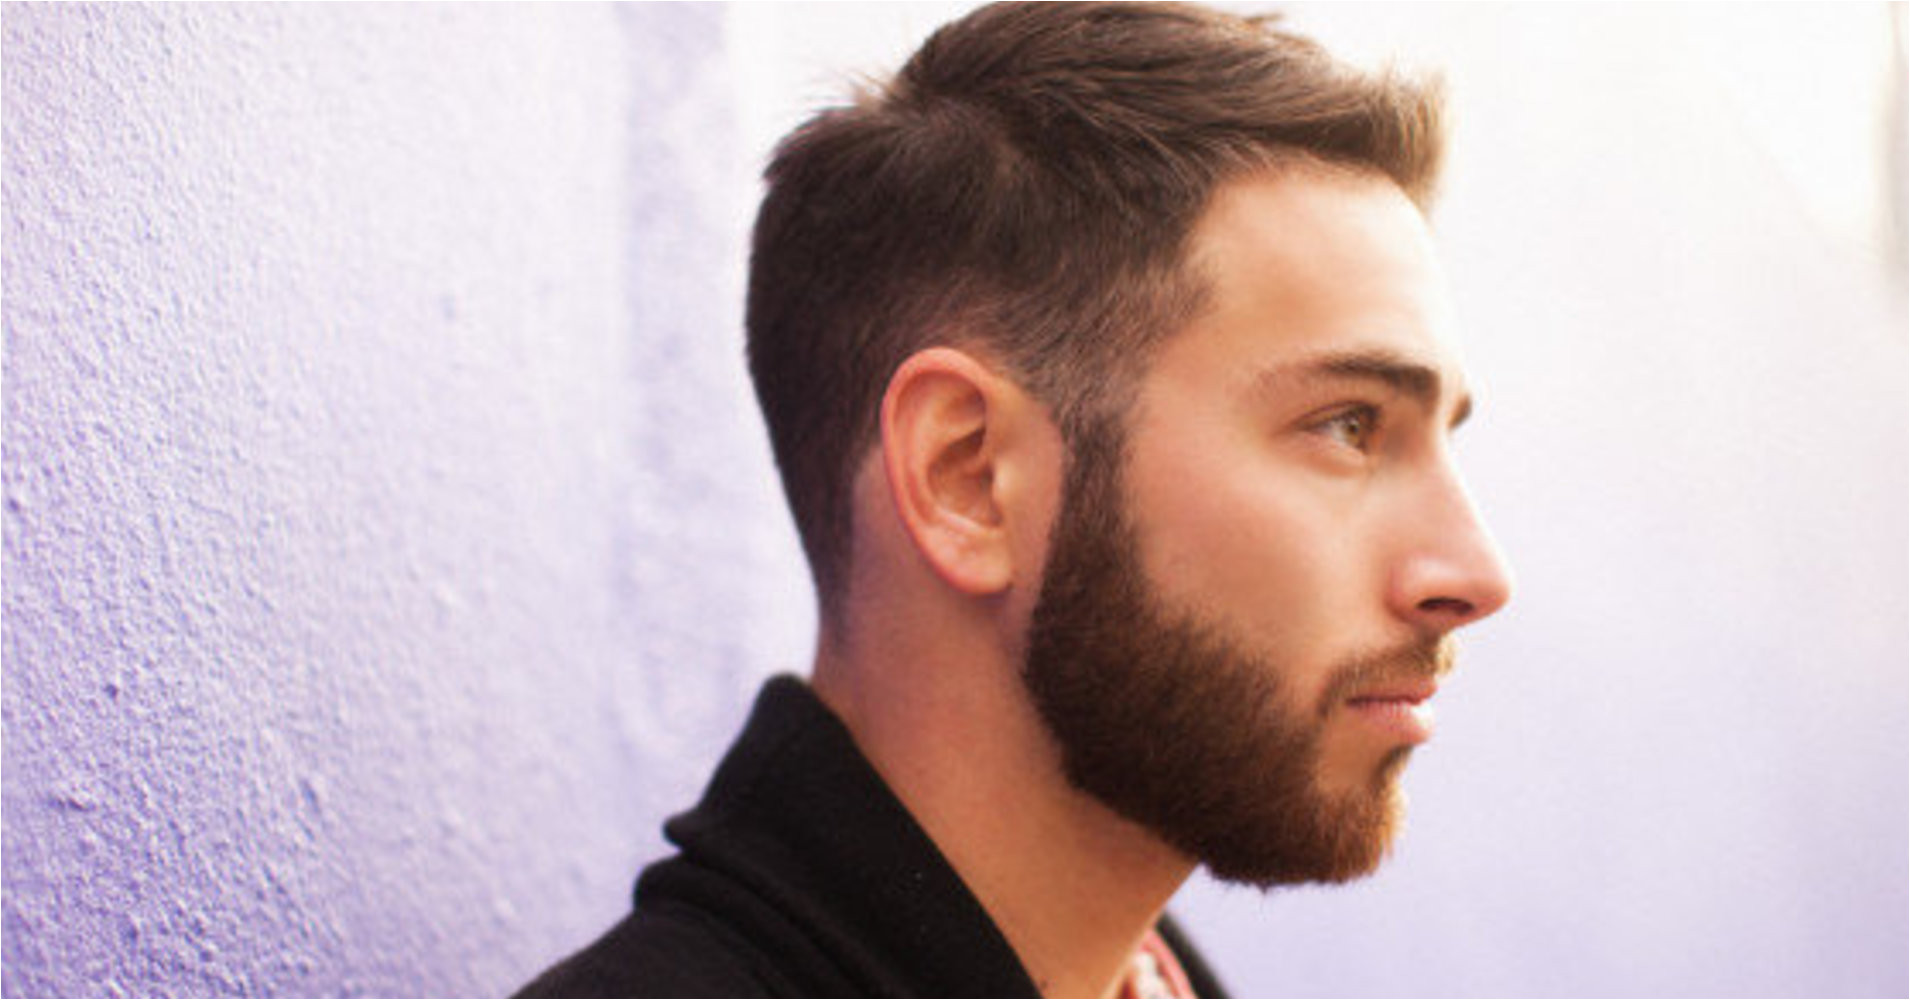 How to Make Your Beard soft Home Remedies What the Heck is Beard Oil and How Does It Work Huffpost Life